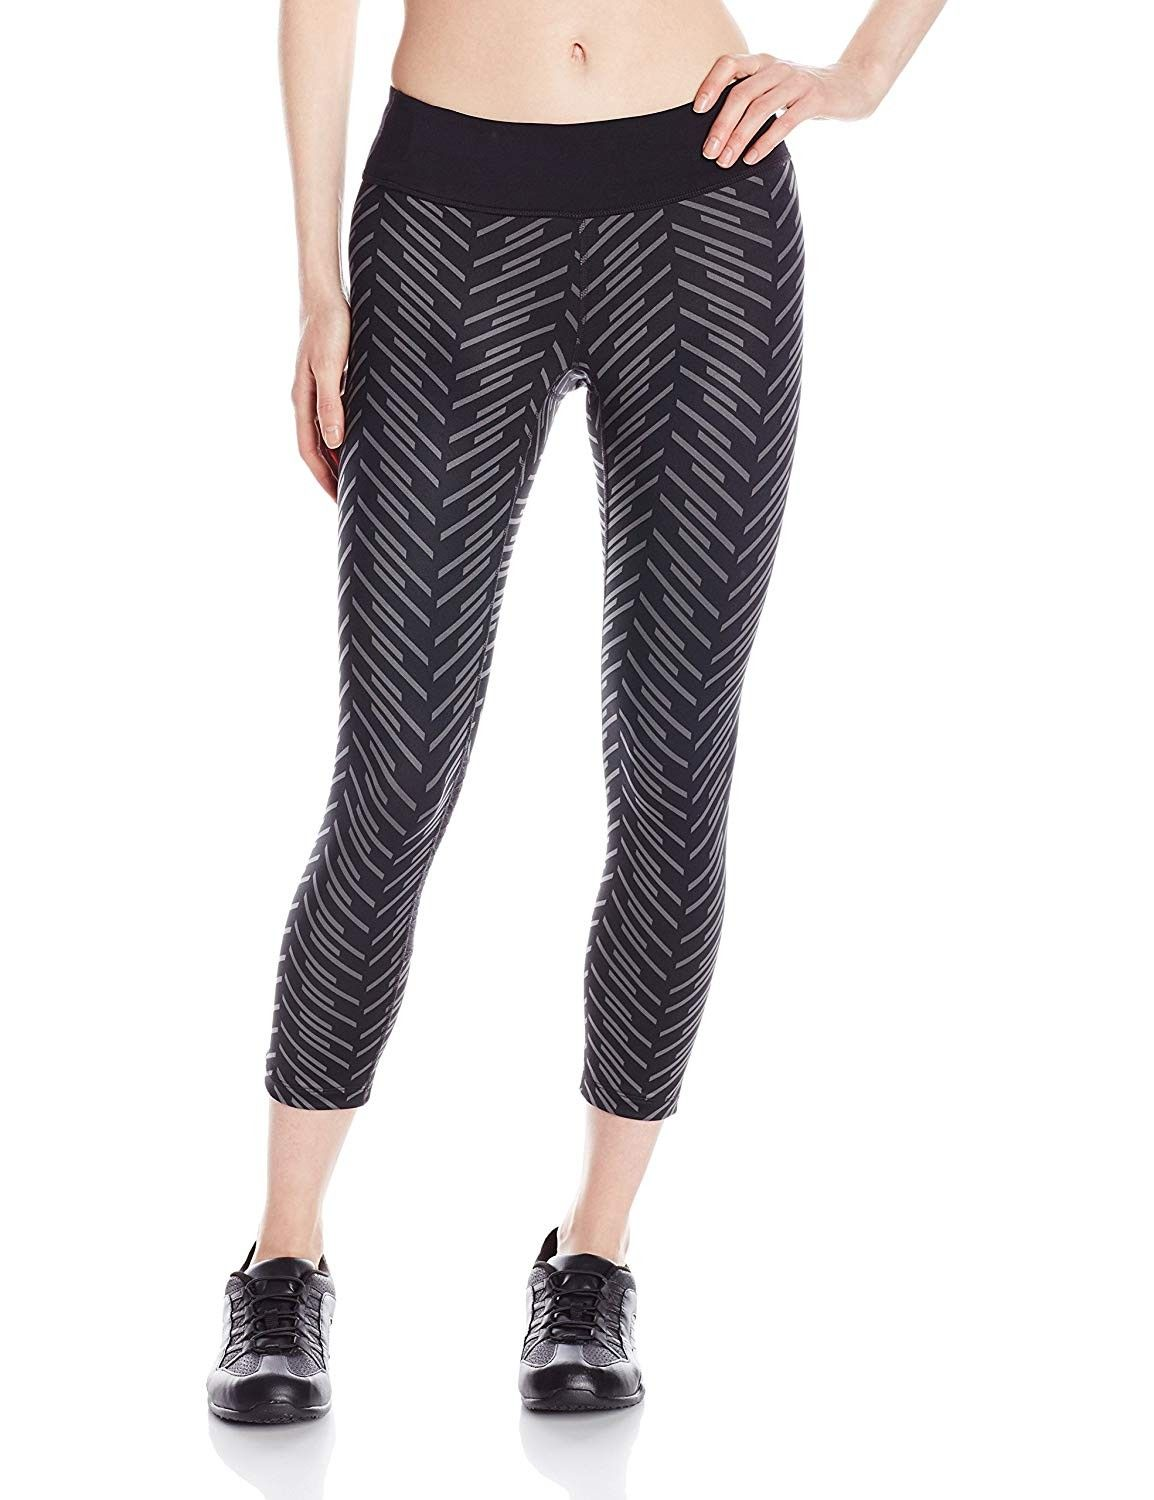 Women's Flash 3 Qtr Tight Print Pants - Black/Black Print - C811MP558ON - Sports & Fitness Clothing,...